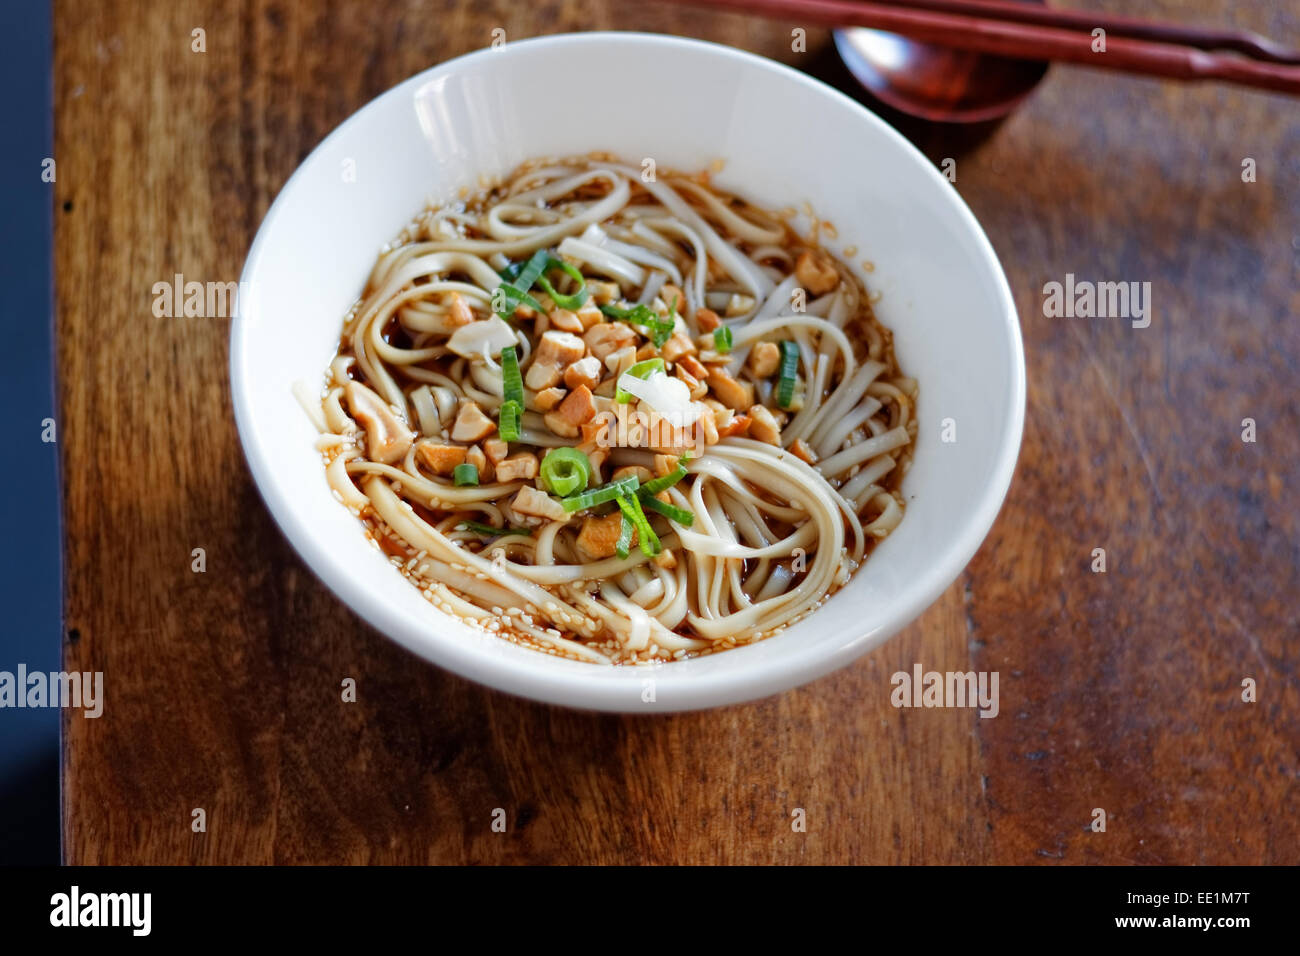 Noodles with tofu and spring onion - Stock Image